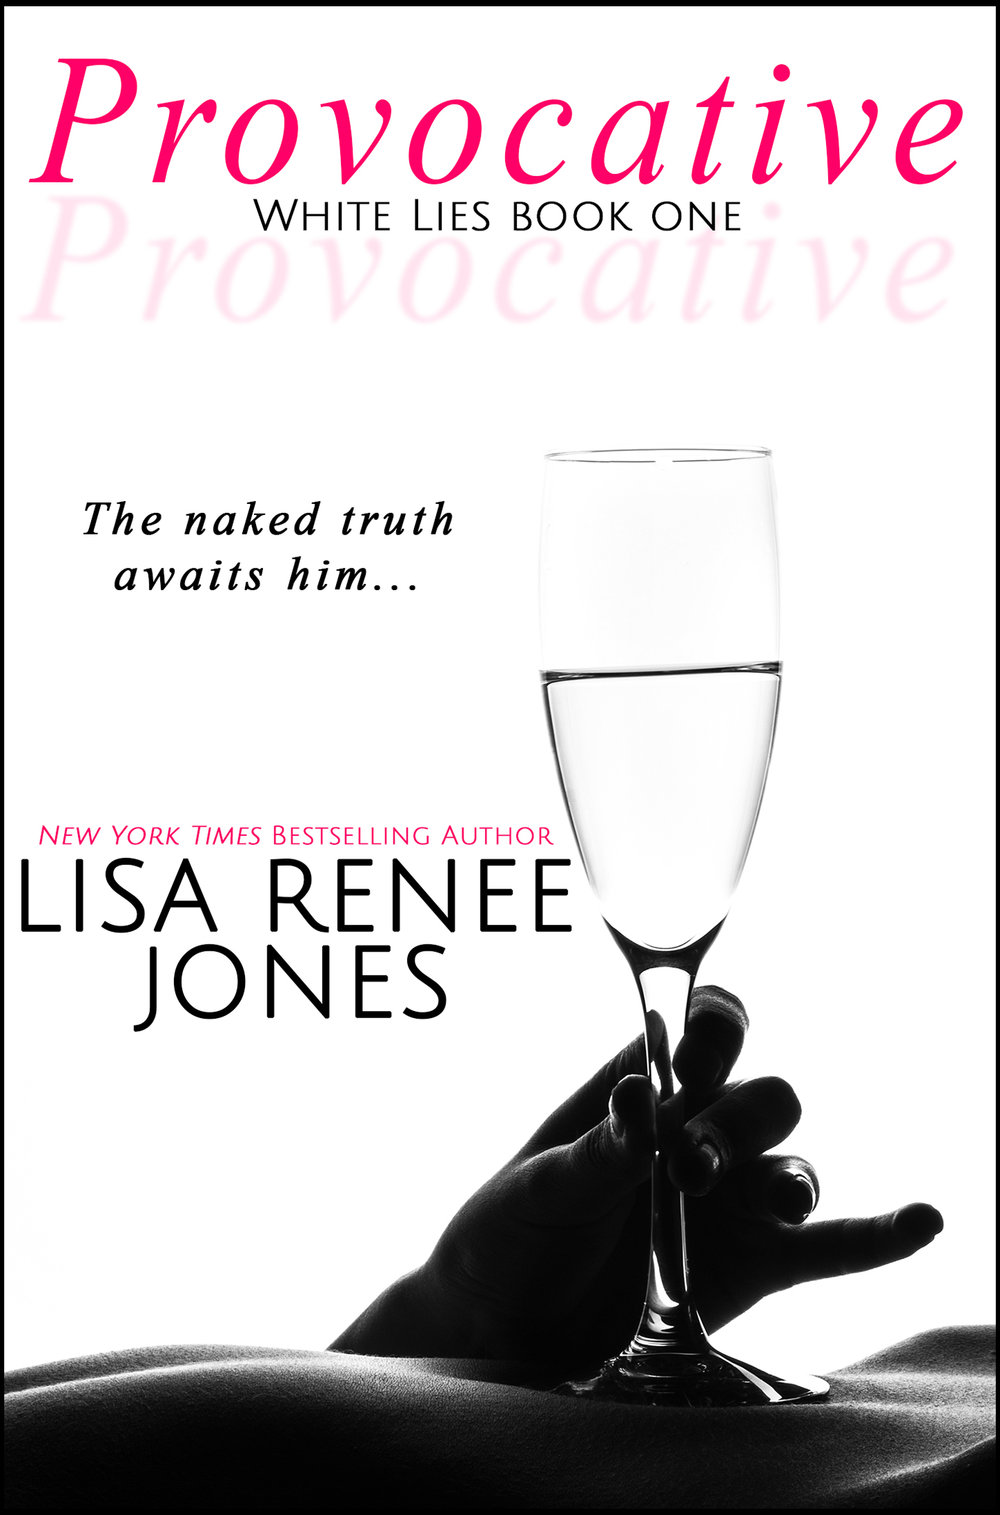 Pre-Order PROVOCATIVE Today!   Special $2.99 pre-order price - will increase after release!         Amazon US ~  Amazon UK  ~  ~  B&N  ~  iBooks  ~  Kobo  ~  Goodreads